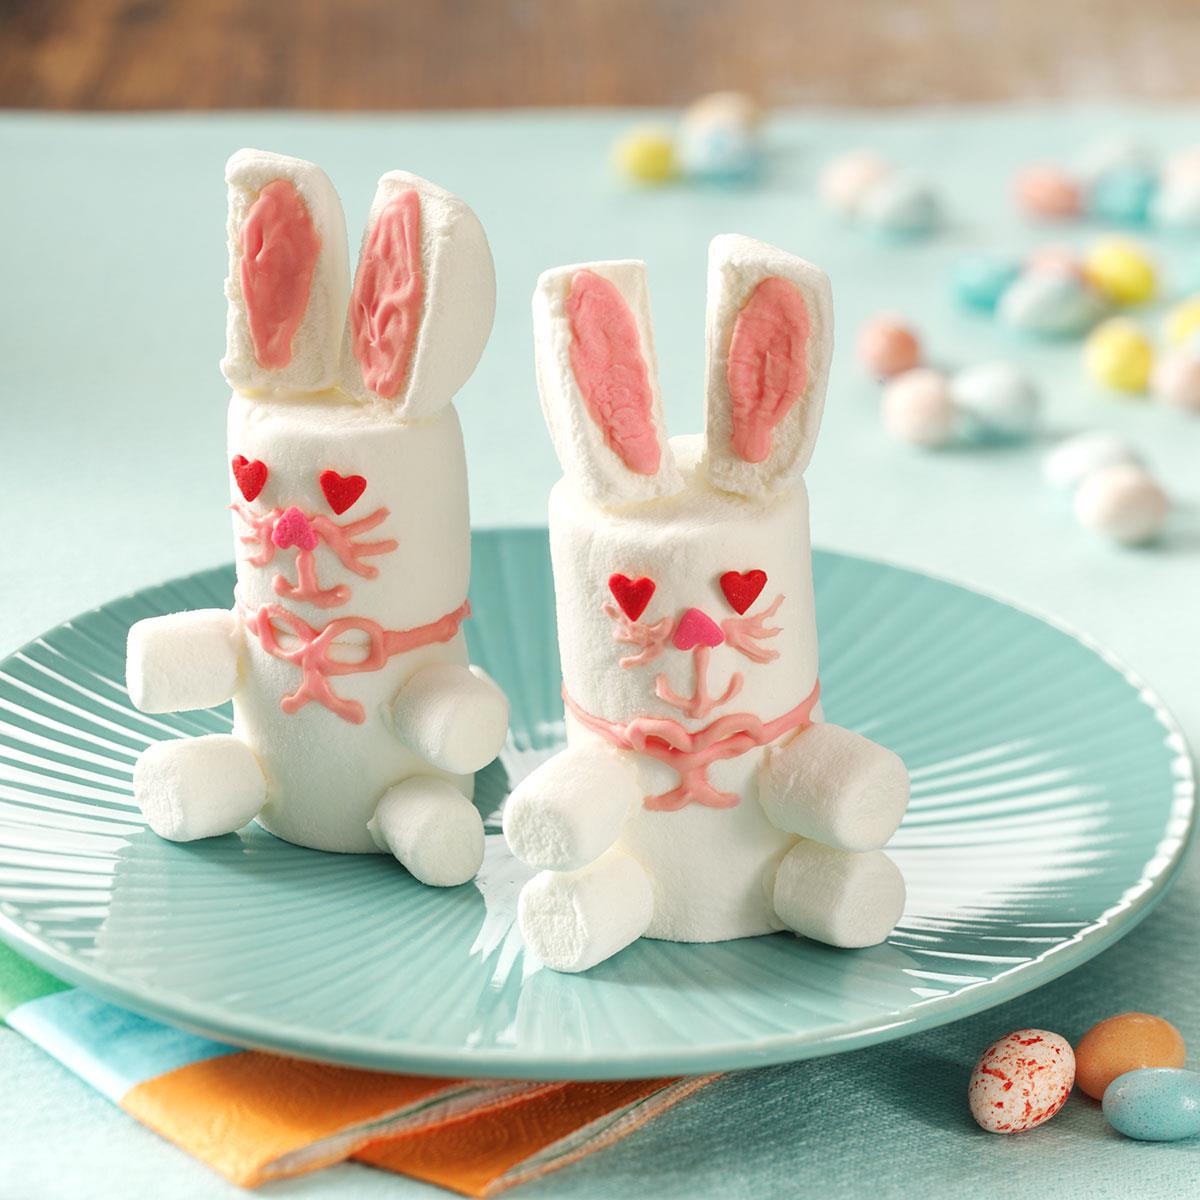 Fun Easter Bunny Treats Exps20233 W101973175d09 22 1bc Rms Easter Bunny S Queens Easter Bunny S photos Easter Bunny Pictures